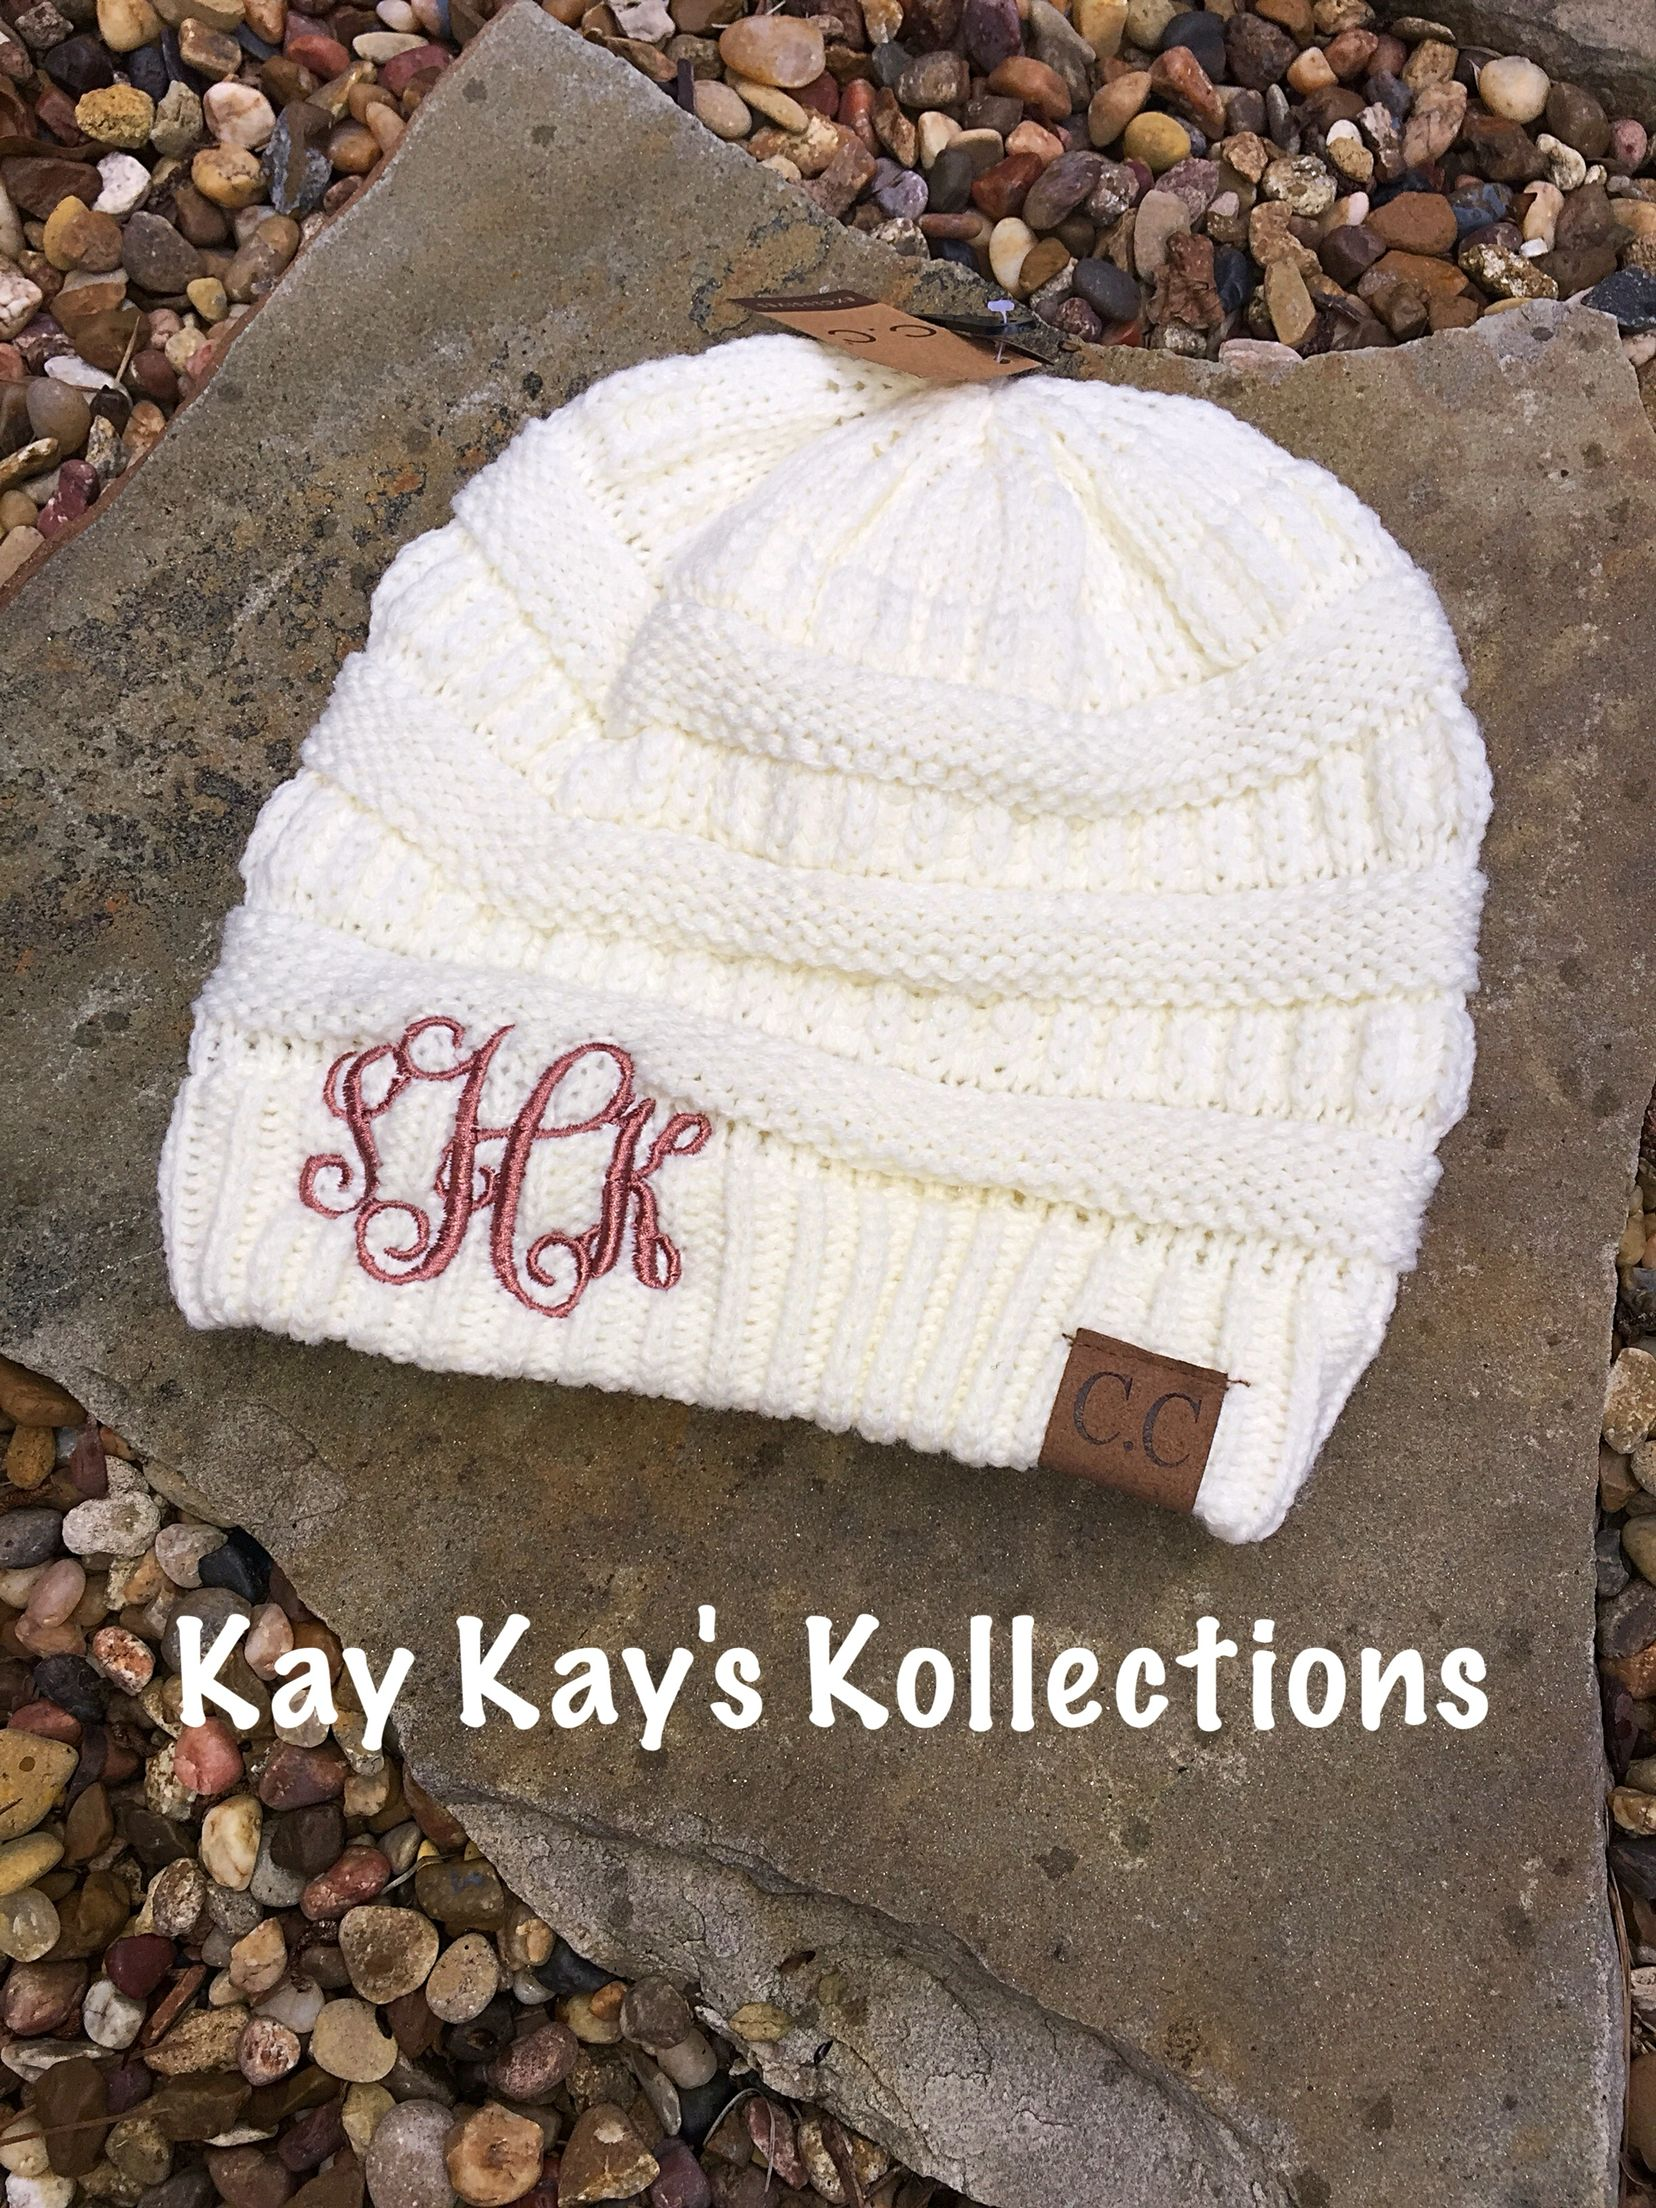 c70a20a4c1ac78 Monogrammed CC Beanies | Kay Kay's Kollections in 2019 | Cc beanie ...